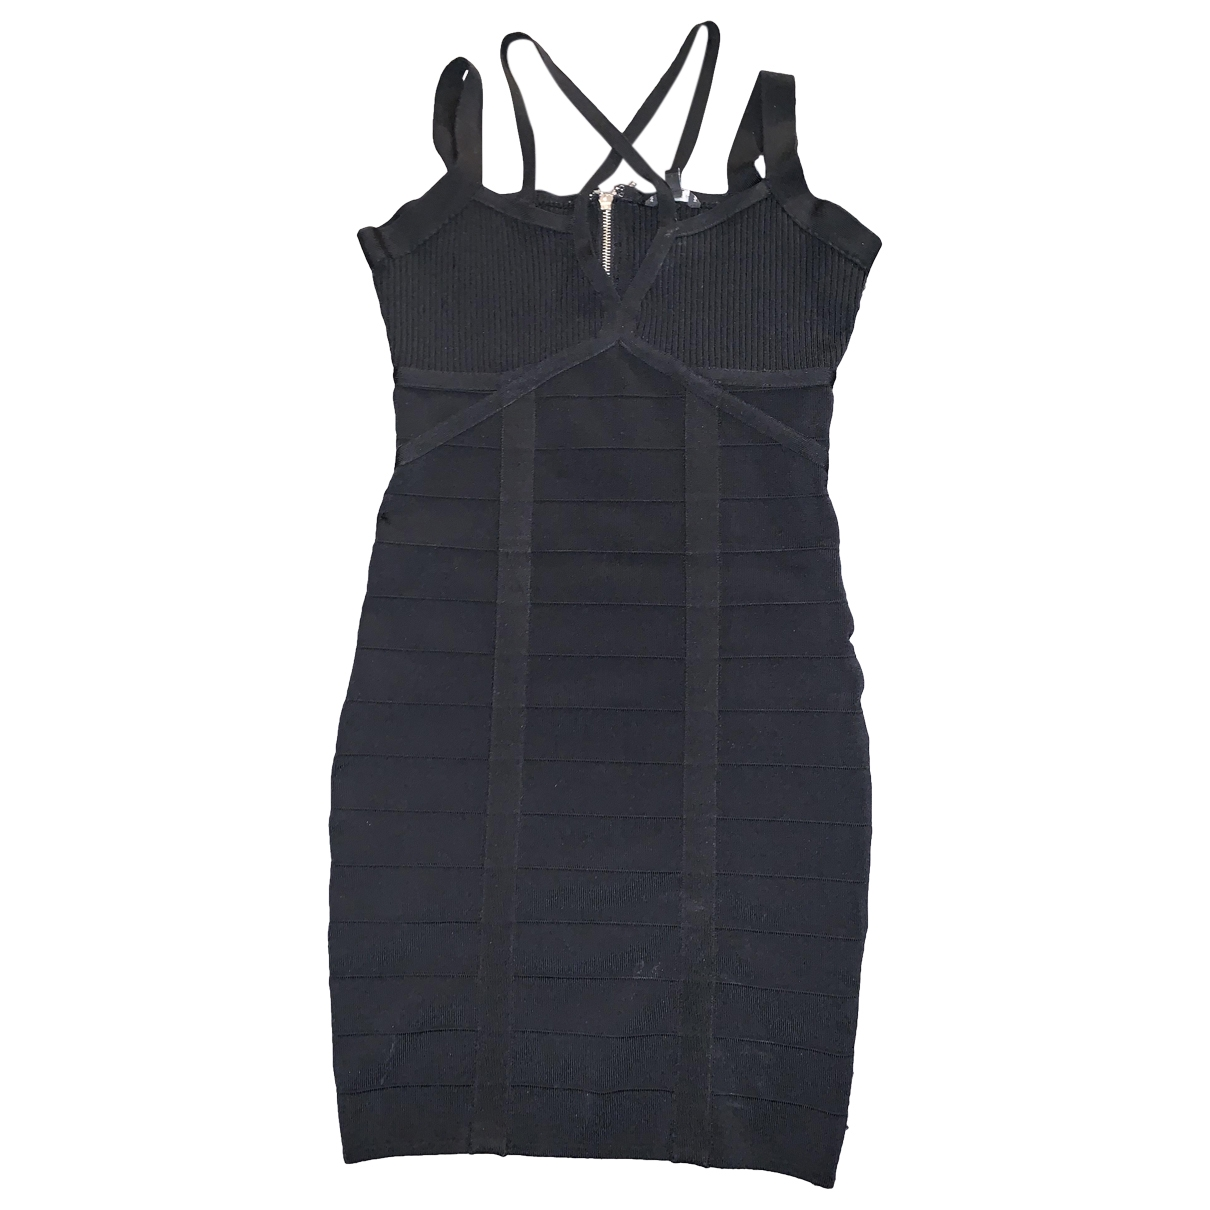 Guess \N Black dress for Women S International